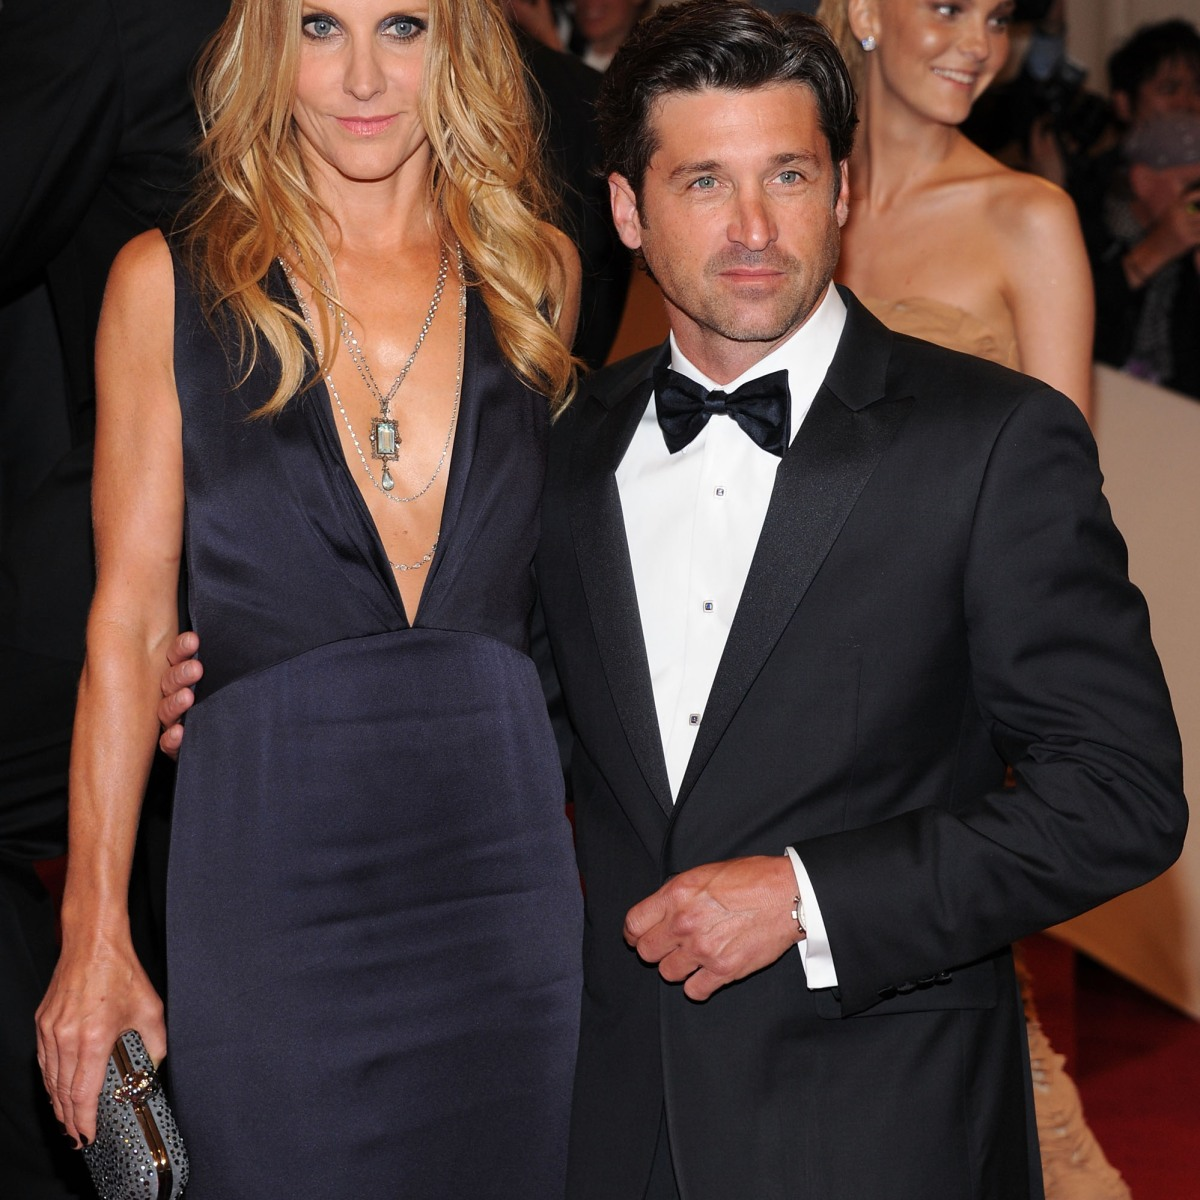 Patrick Dempsey Hits The Red Carpet With Formerly Estranged Wife